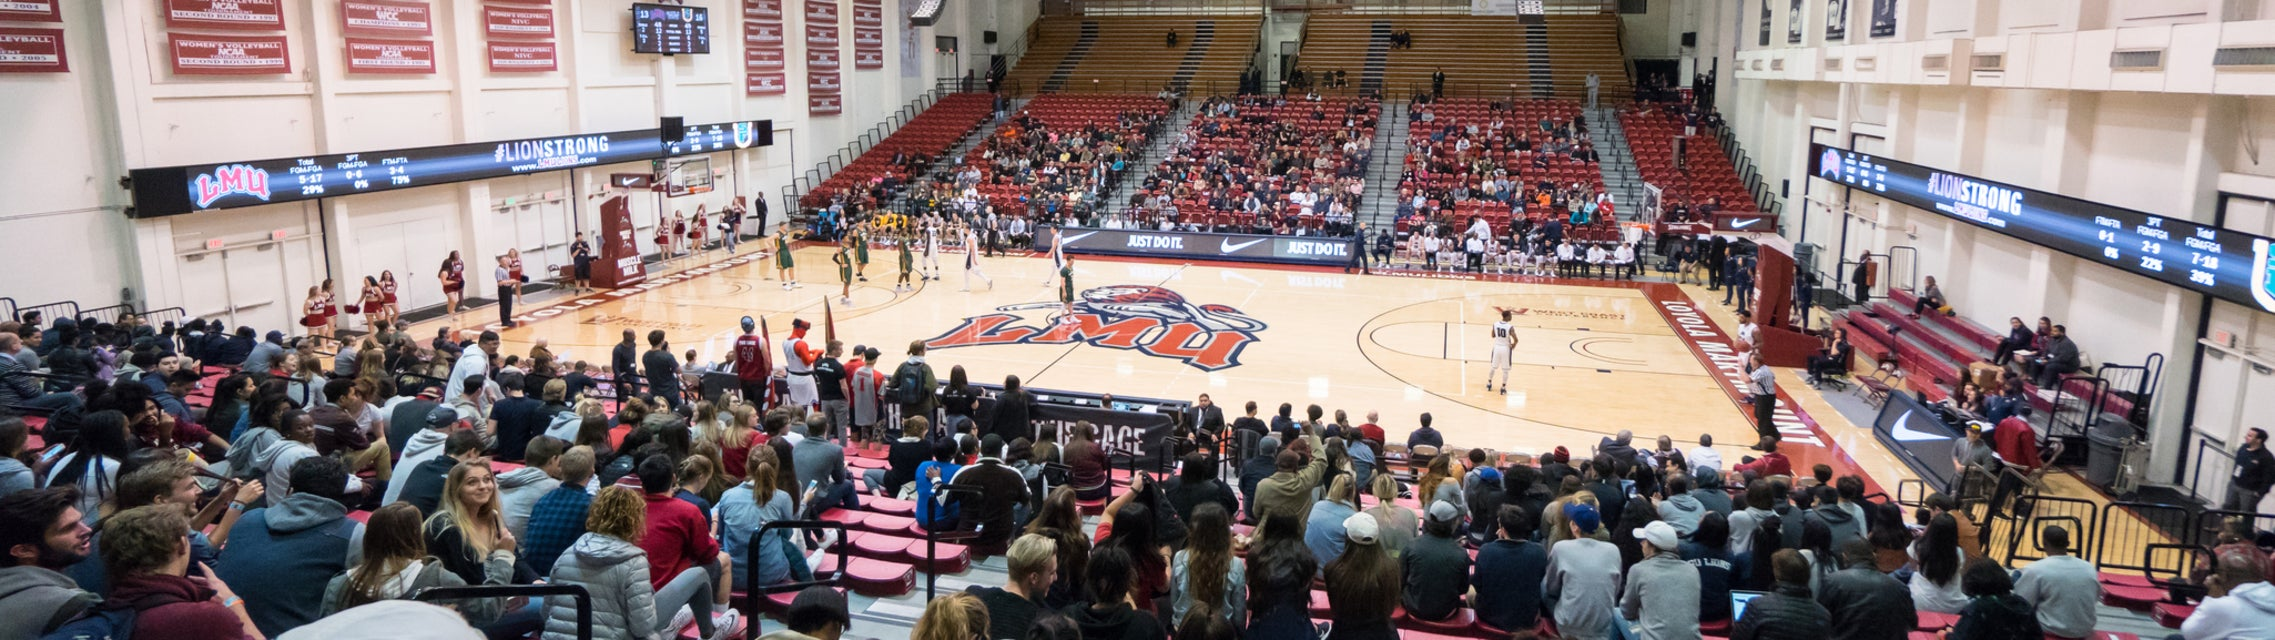 LMU Basketball Tickets